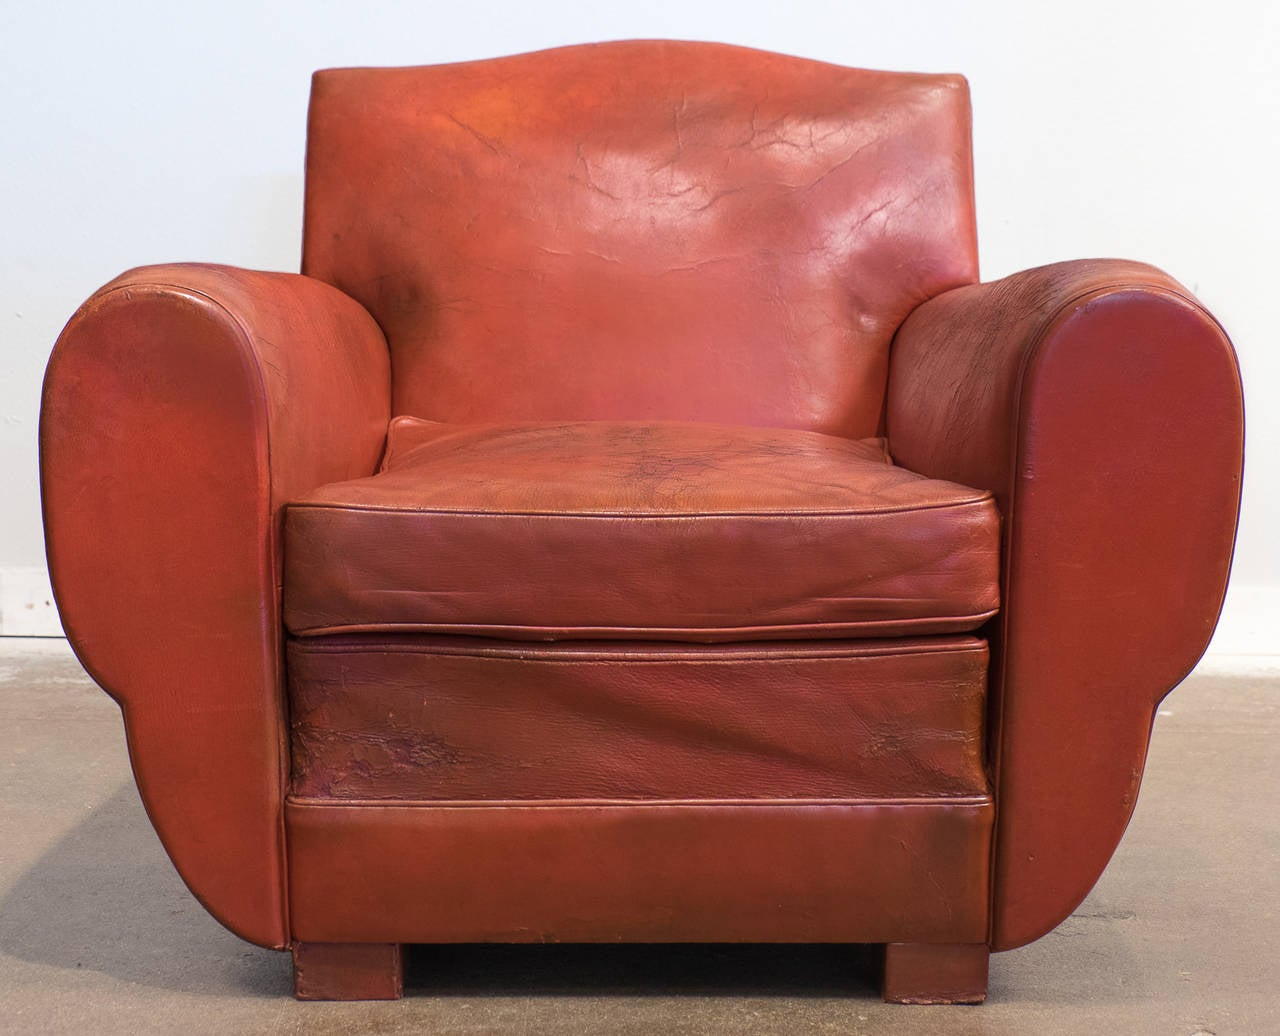 French Club Chair Superb French Vintage Red Leather Club Chair At 1stdibs